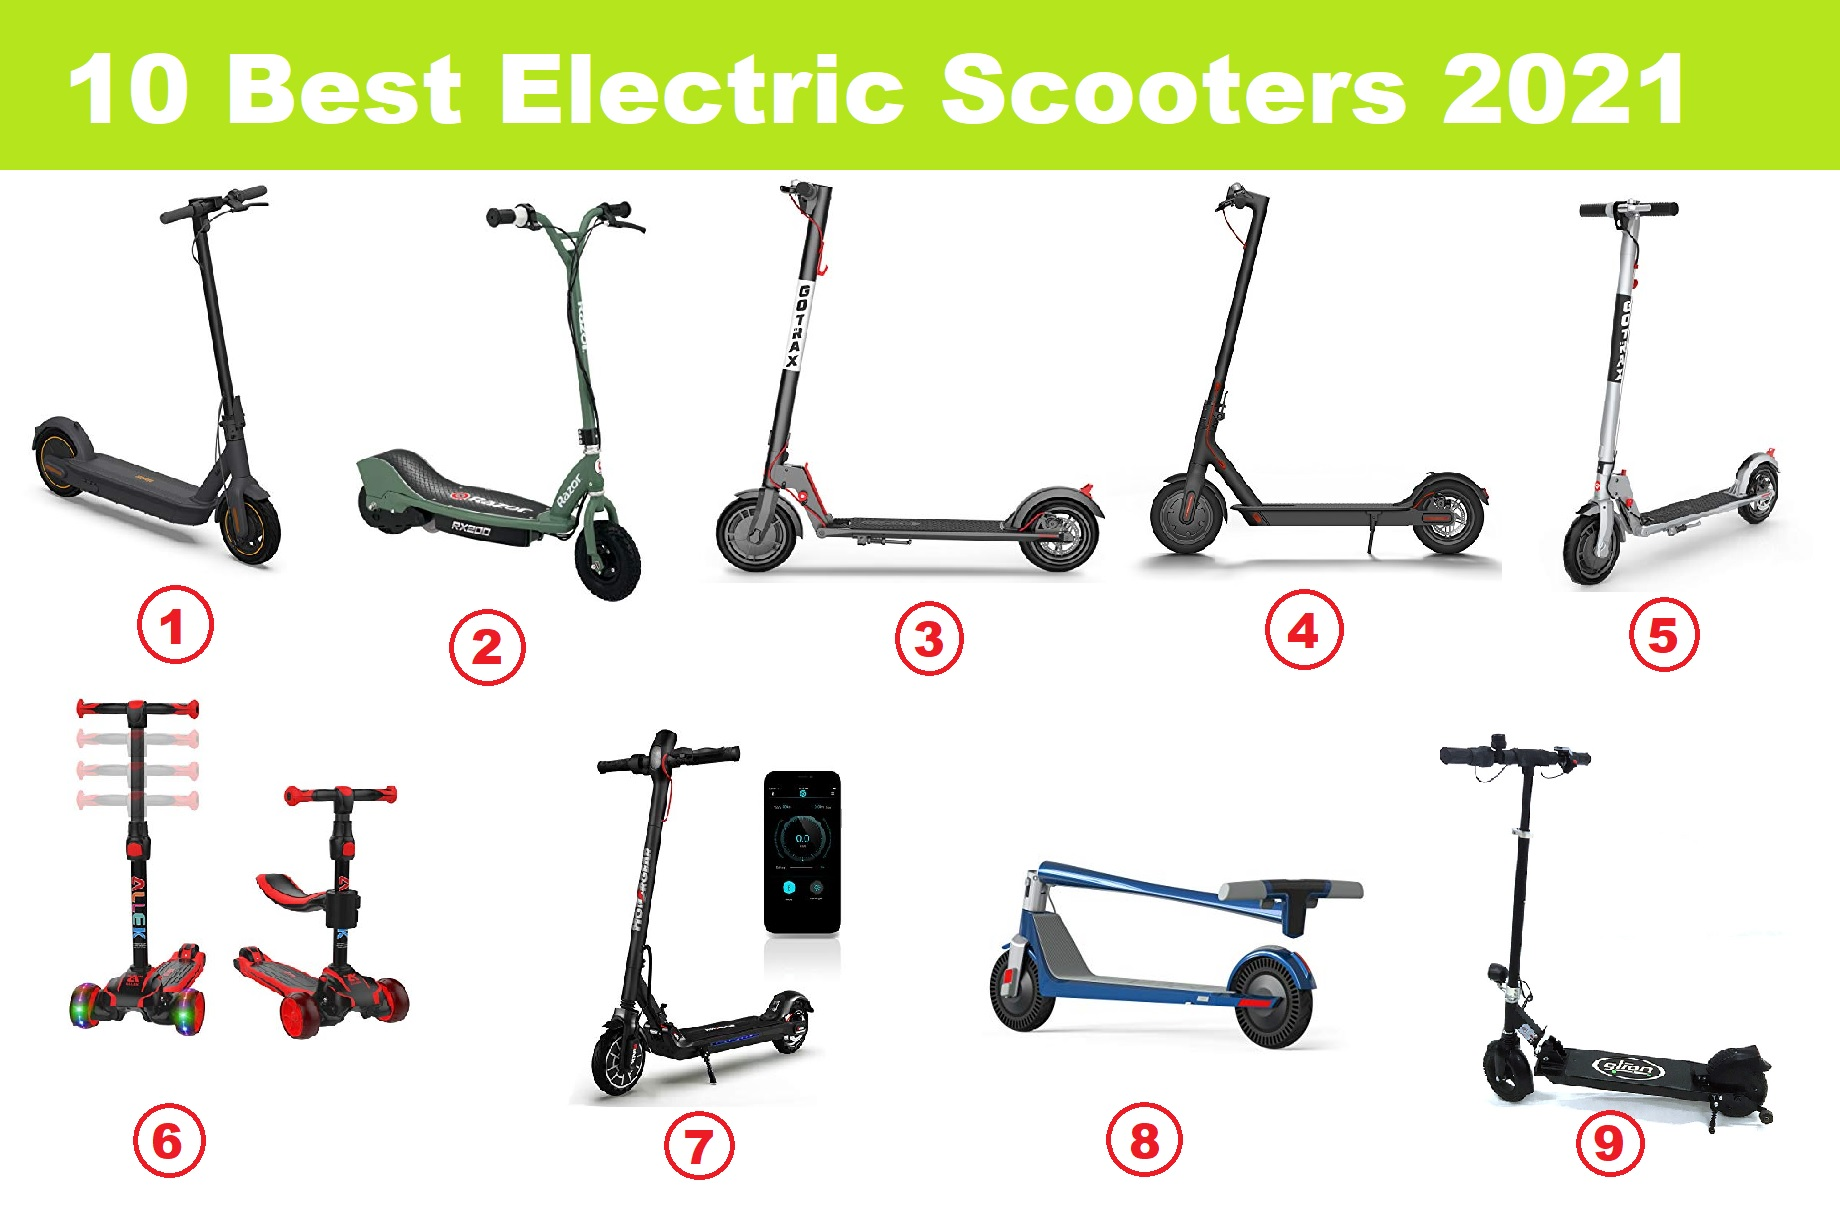 10 Best Electric Scooters for Adults Commuting 2021 Review & Comparison